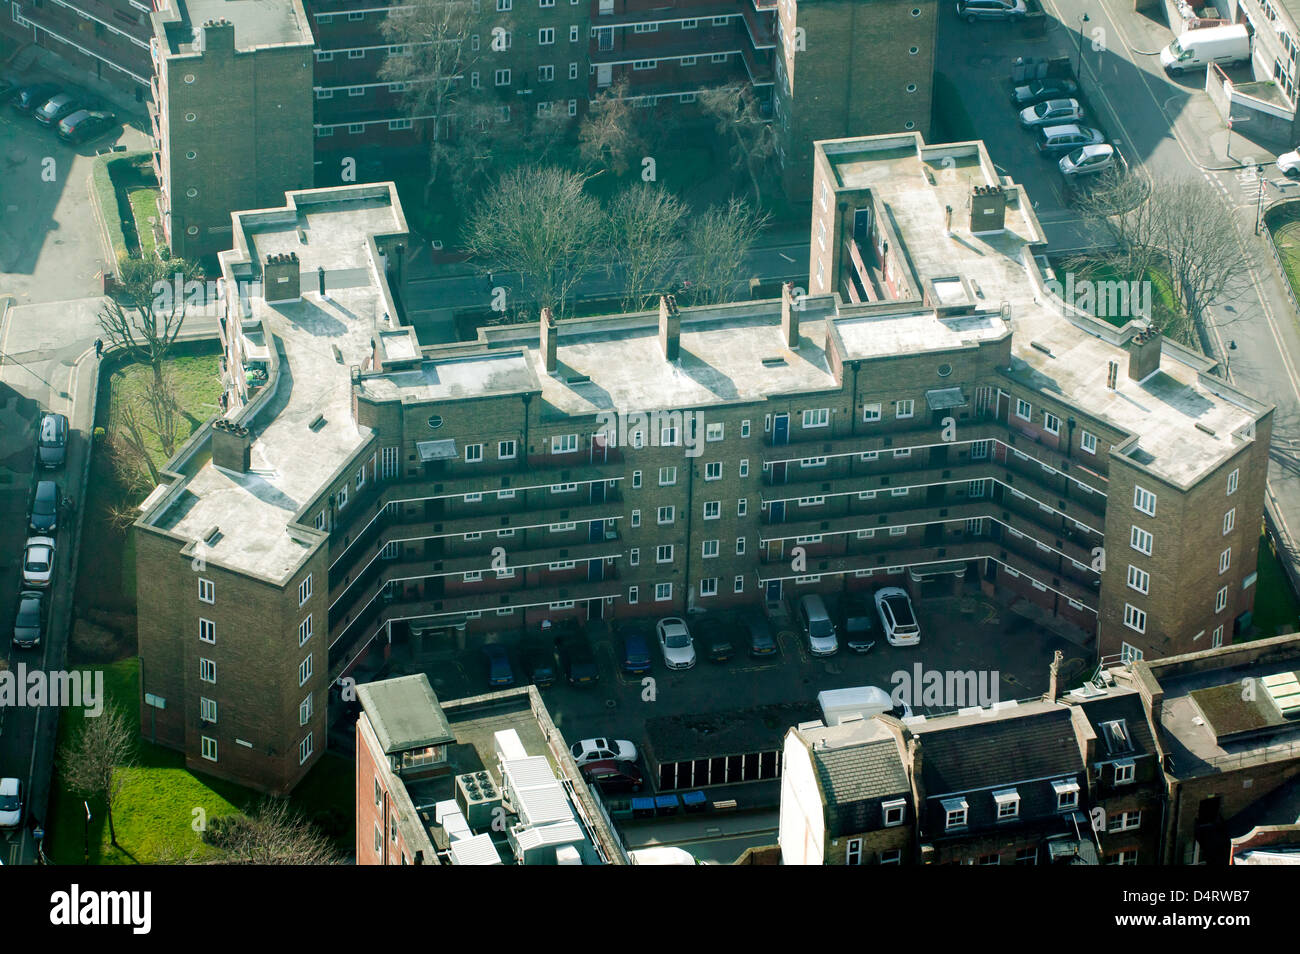 Aerial view of Mermaid Court, an H-shaped 1960's style council housing block in  Southwalk, London - Stock Image